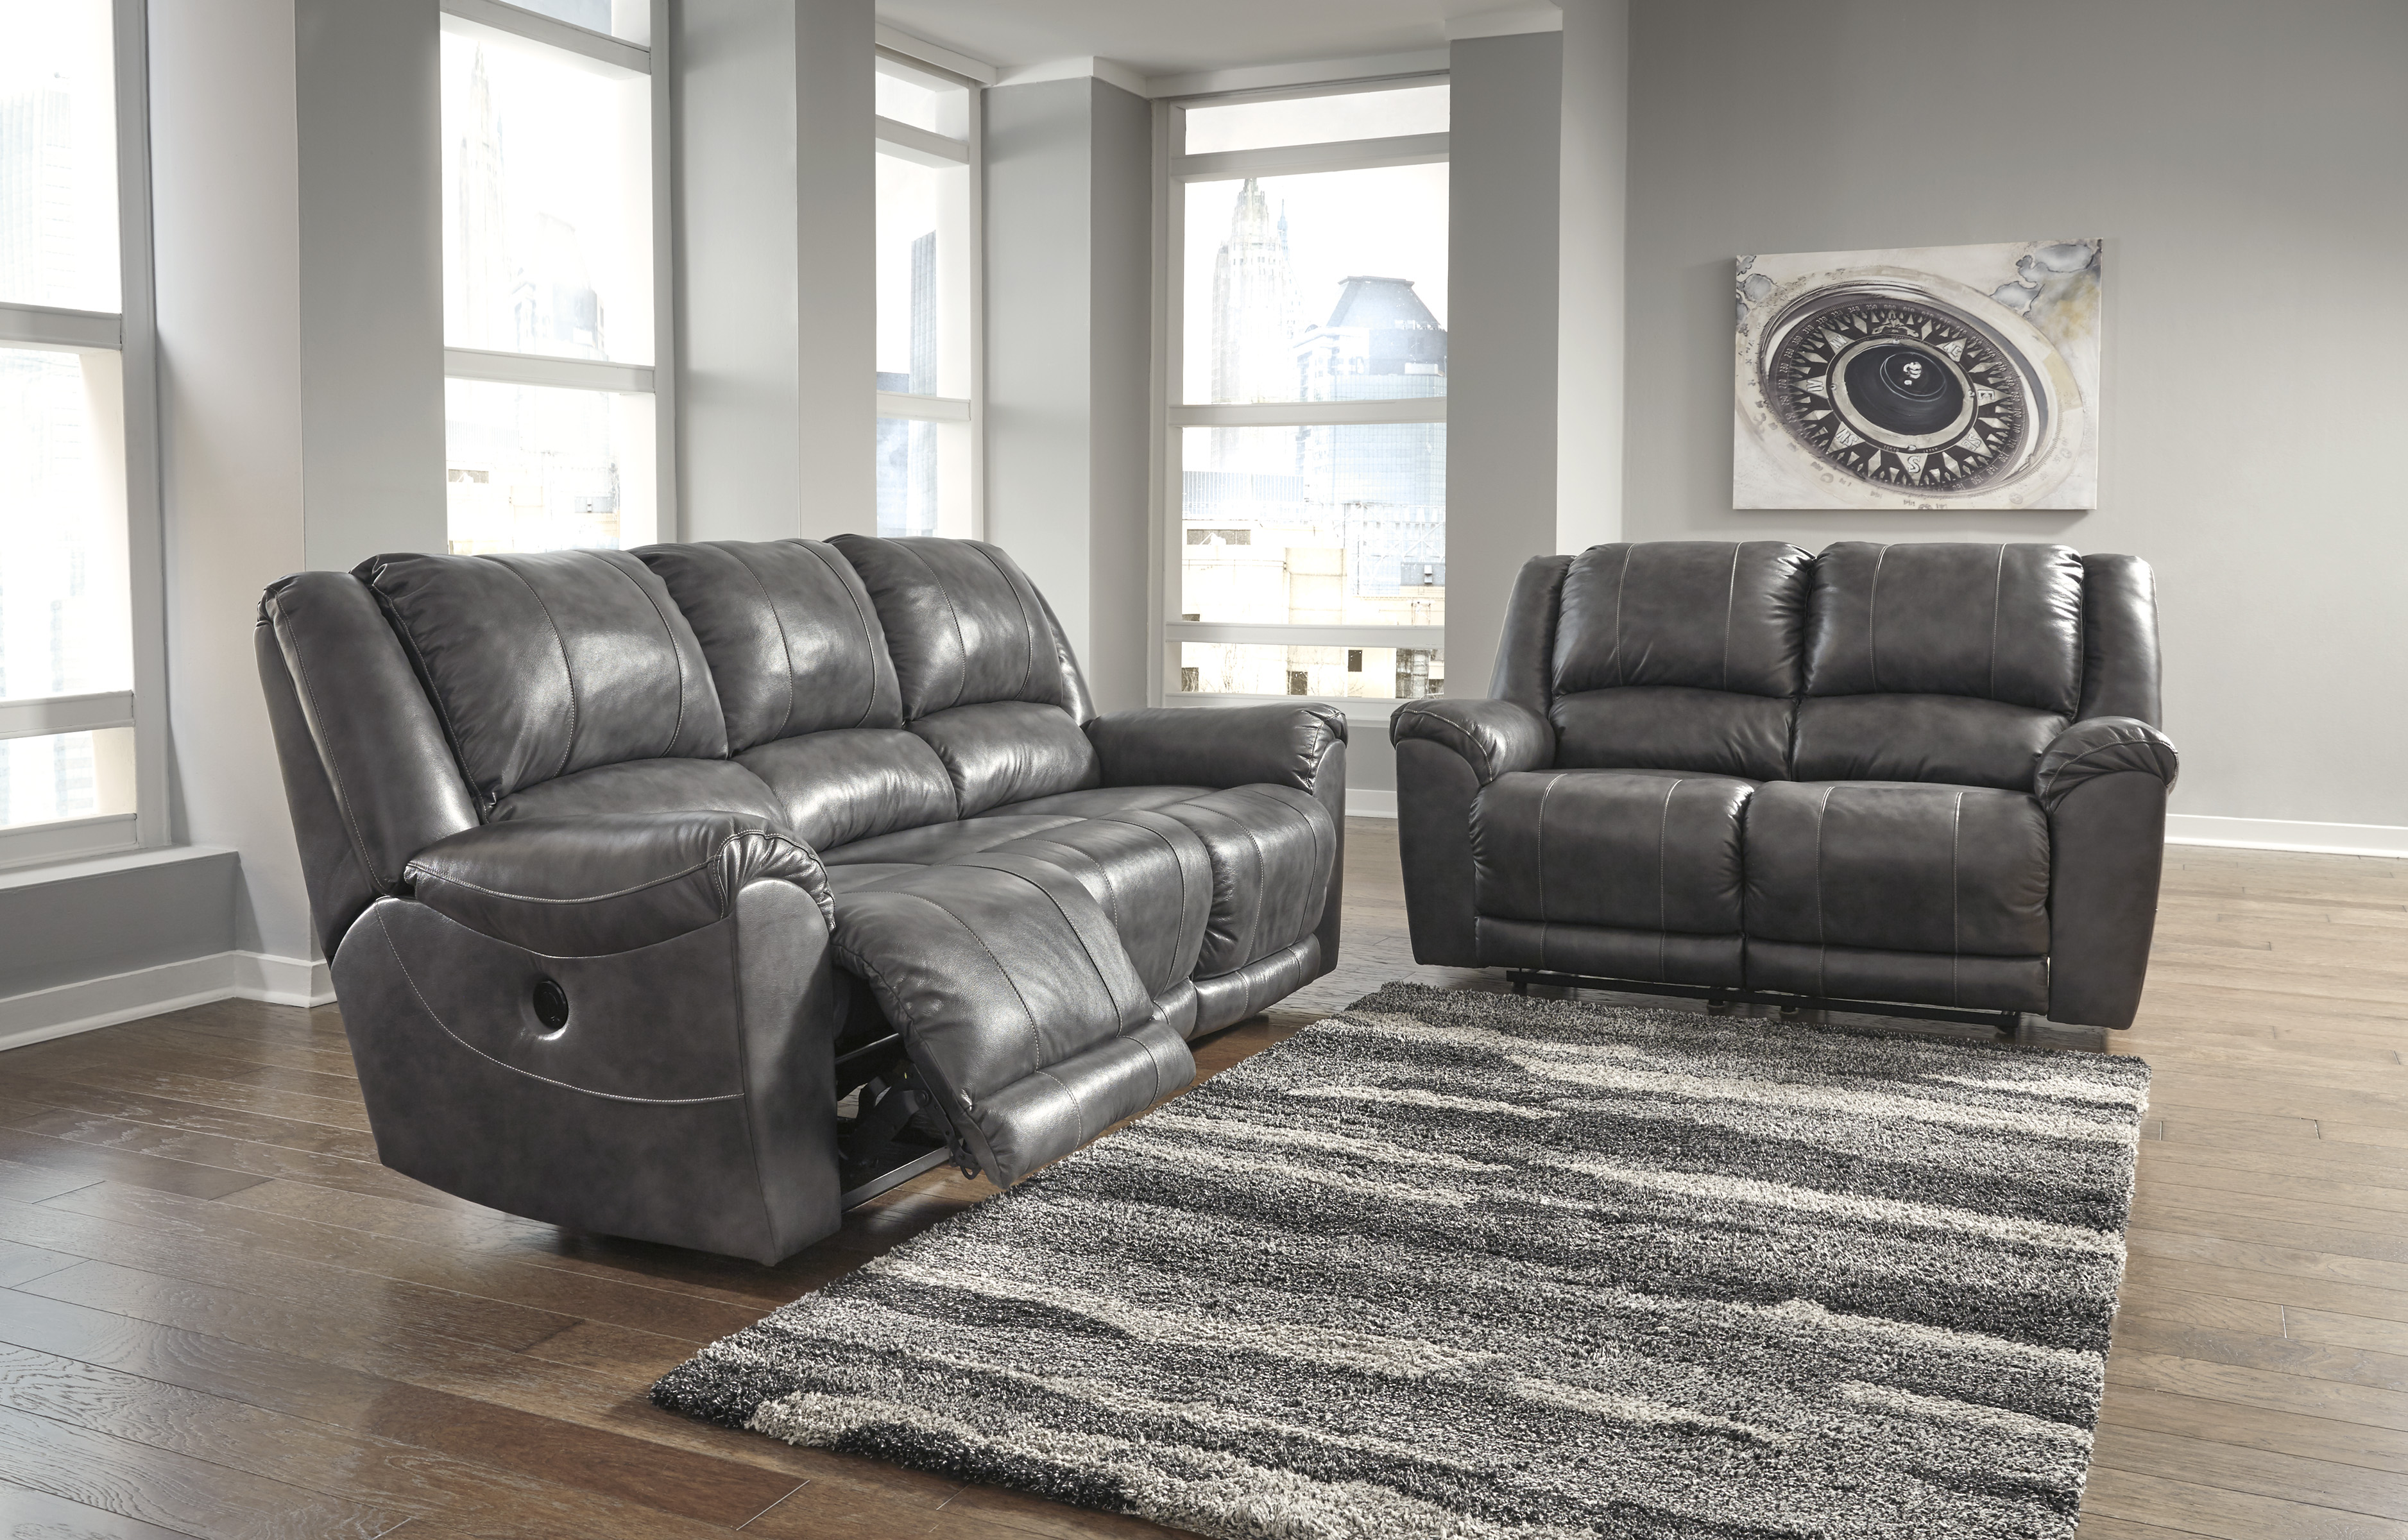 Awesome Persiphone Charcoal Power Reclining Sofa And Loveseat Machost Co Dining Chair Design Ideas Machostcouk